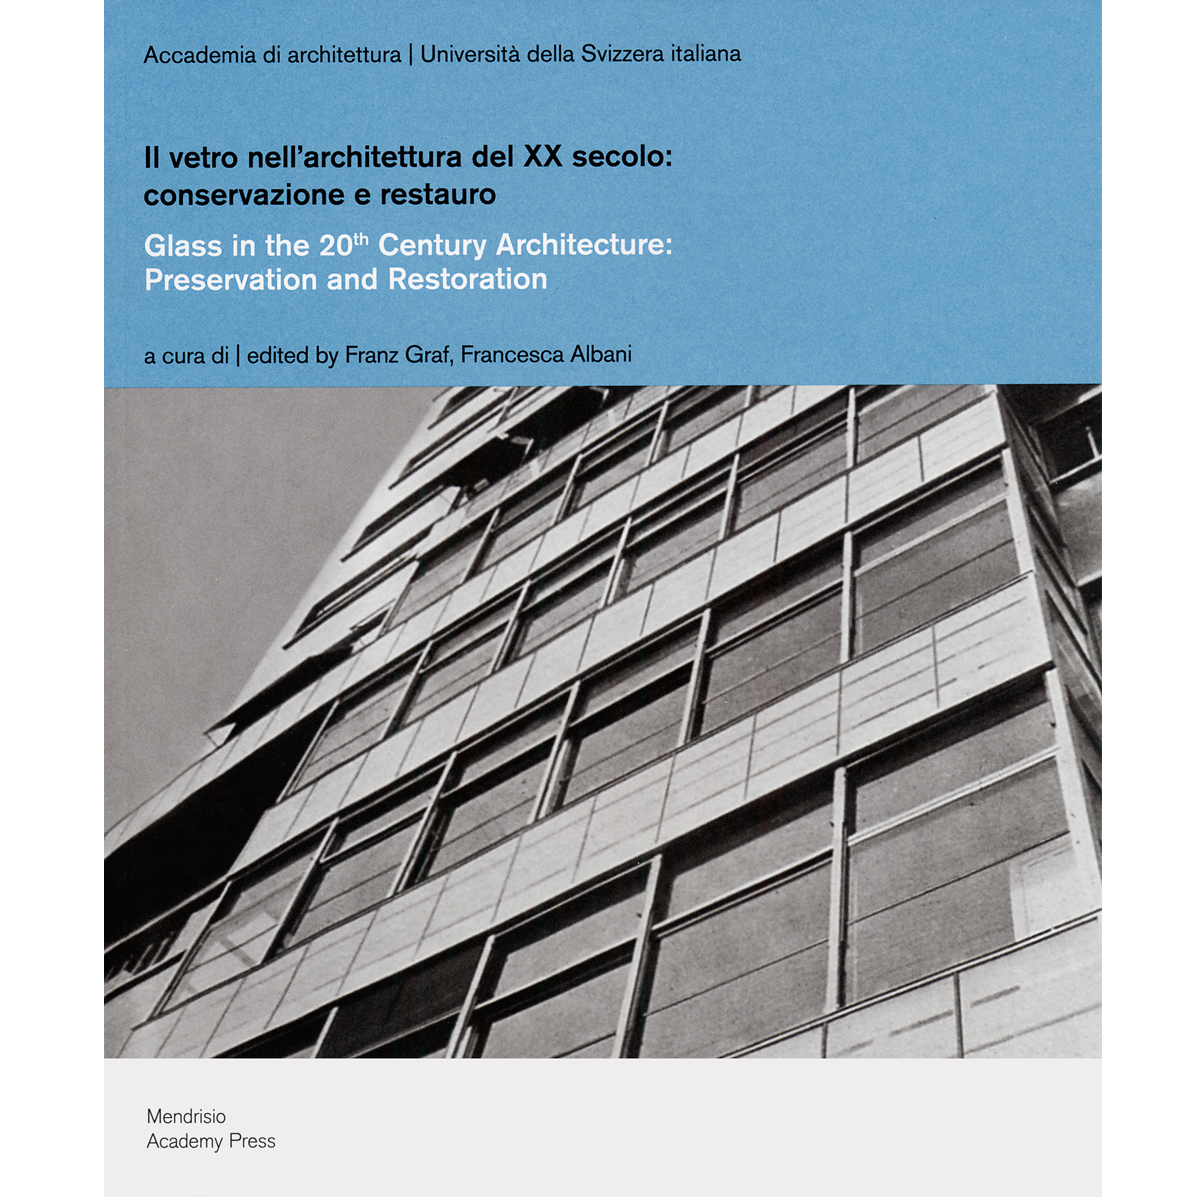 Glass in the 20th Century Architecture: Preservation and Restoration